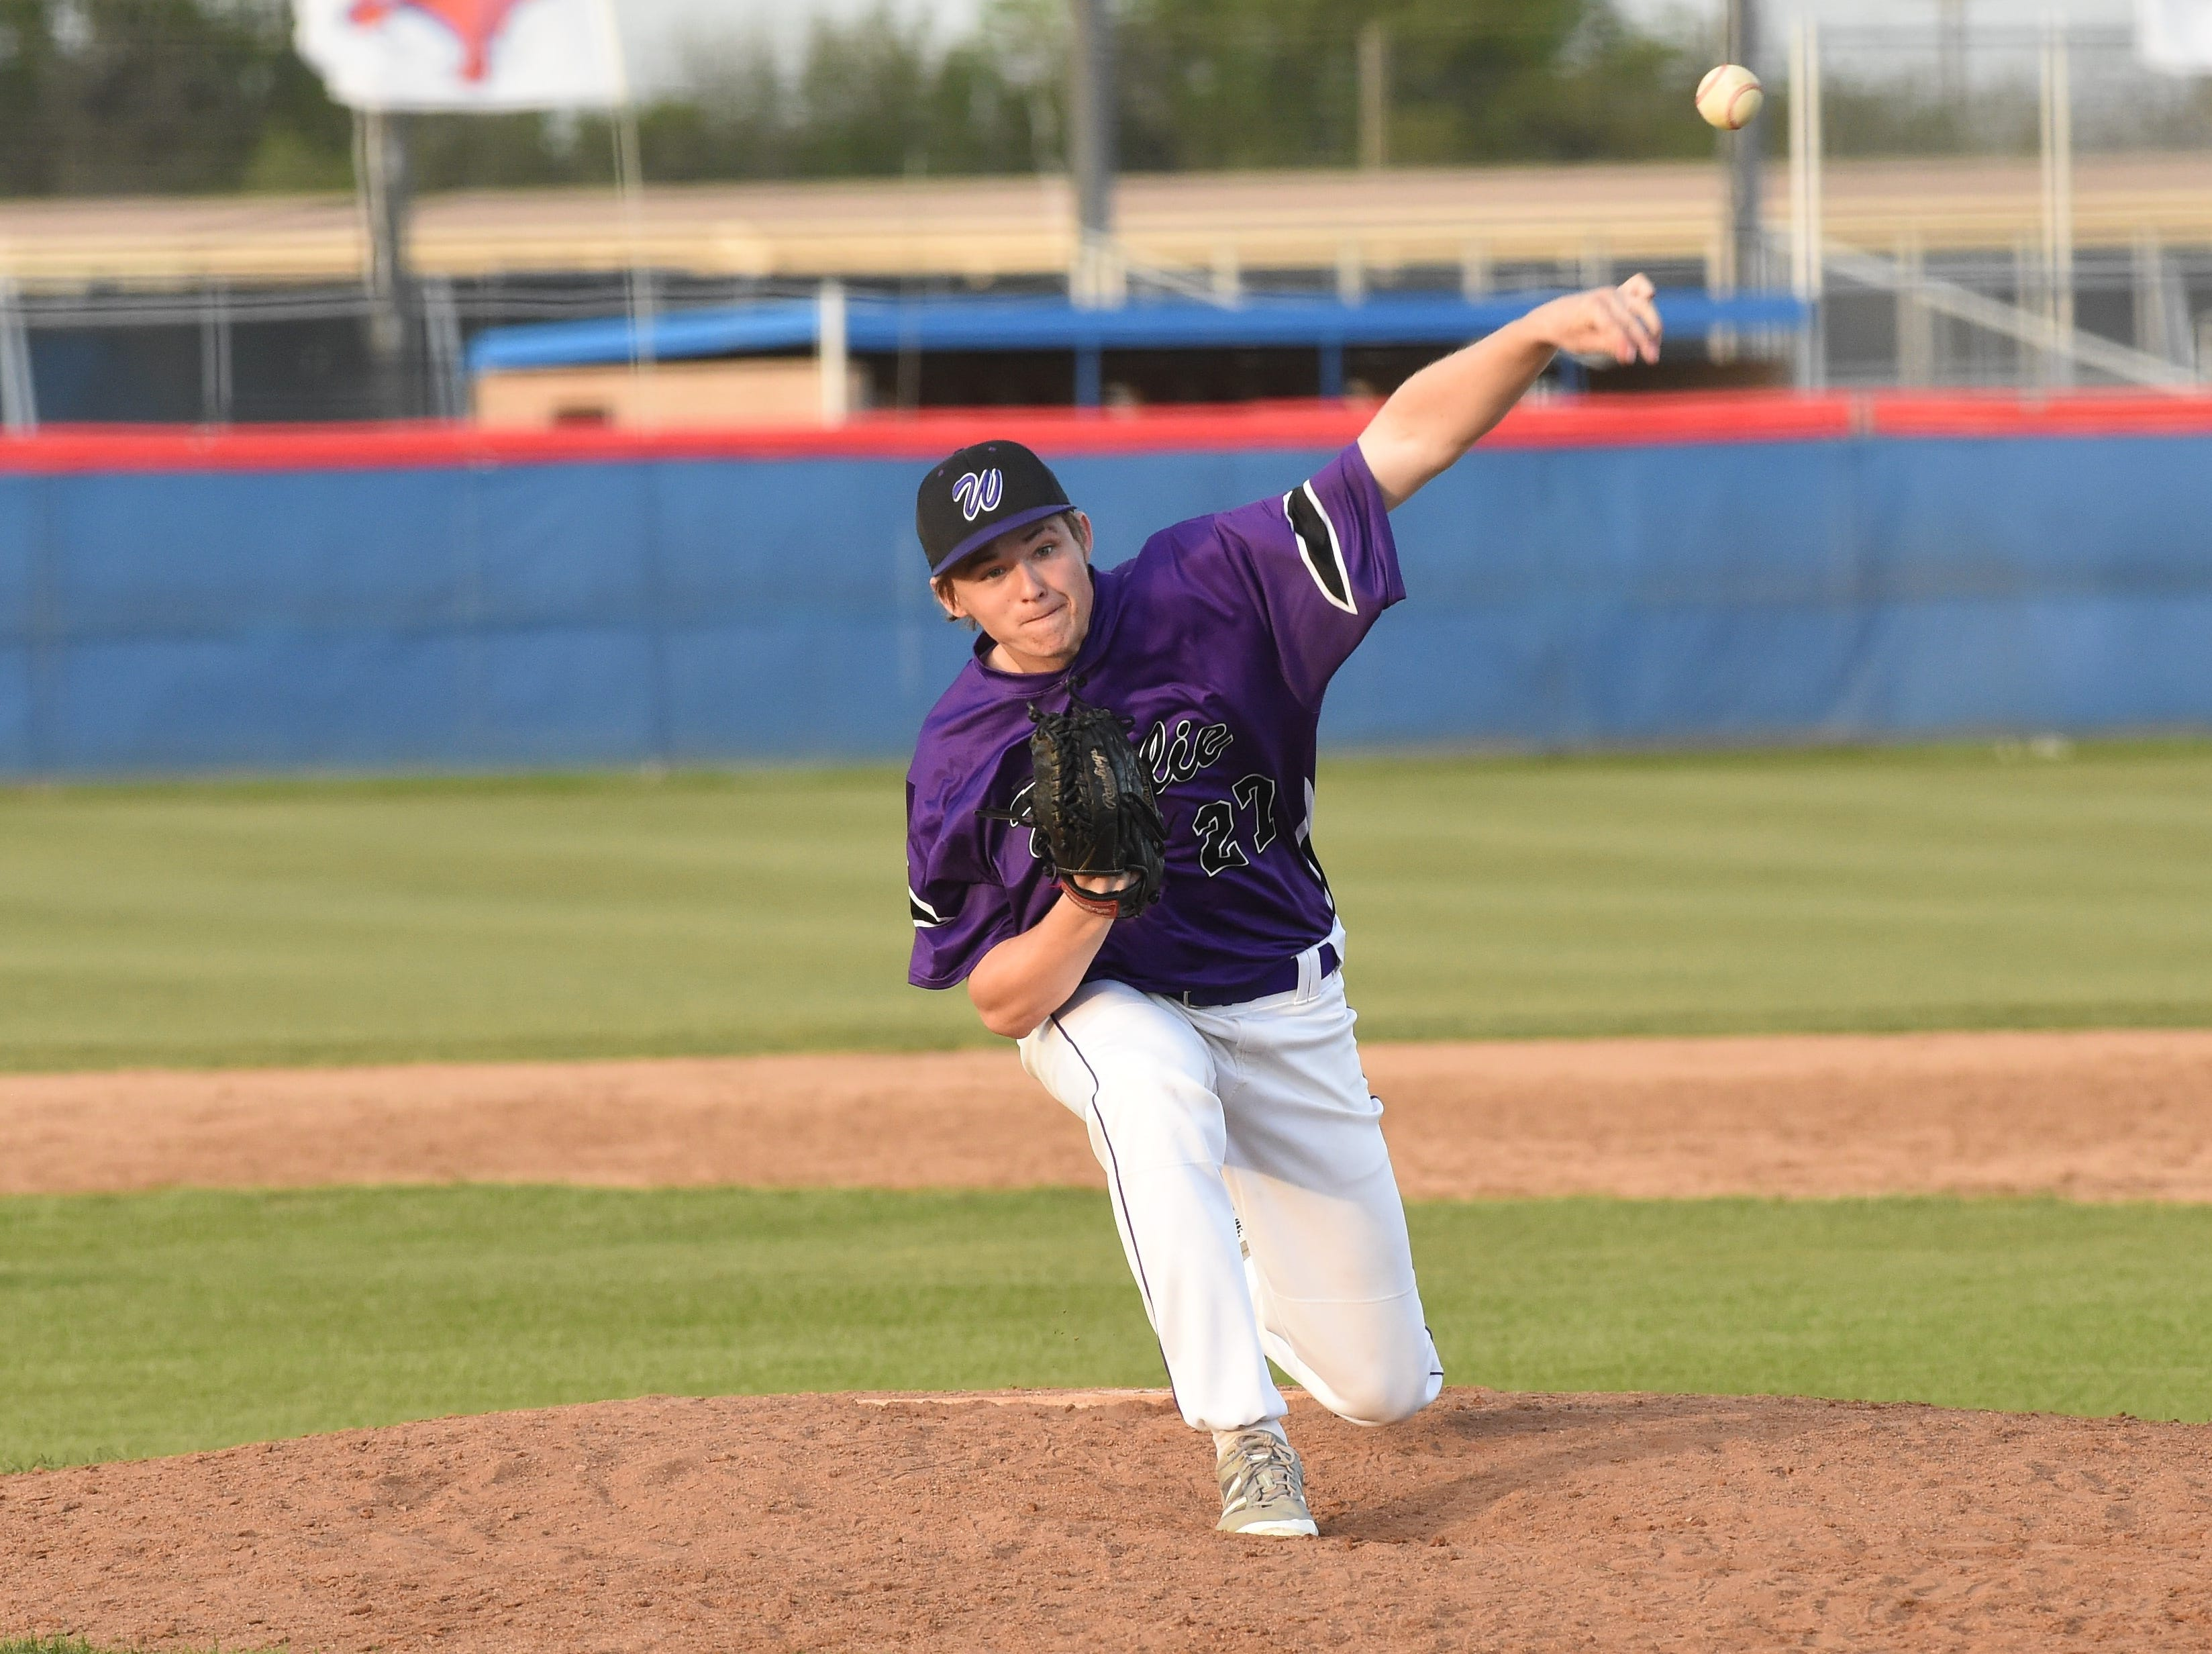 Wylie's Reed Hughes (27) lets go of a pitch against Cooper at Cougar Field on Tuesday, April 9, 2019. Hughes got the final out, a strikeout, in the Bulldogs 11-5 win.